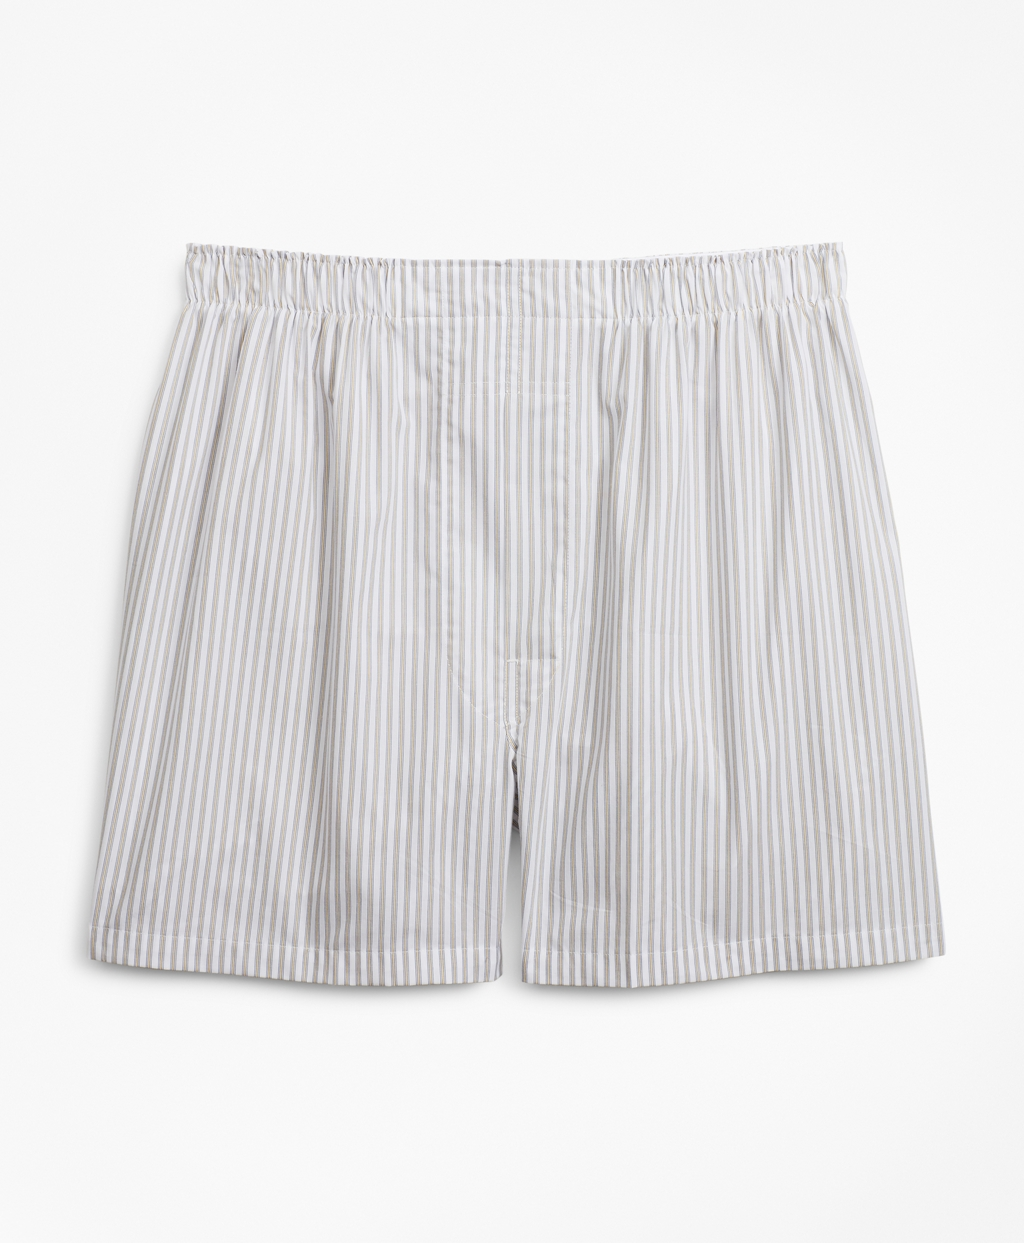 1940s Men's Underwear: Briefs, Boxers, Unions, & Socks Brooks Brothers Mens Relaxed Fit Framed Stripe Boxers $17.50 AT vintagedancer.com